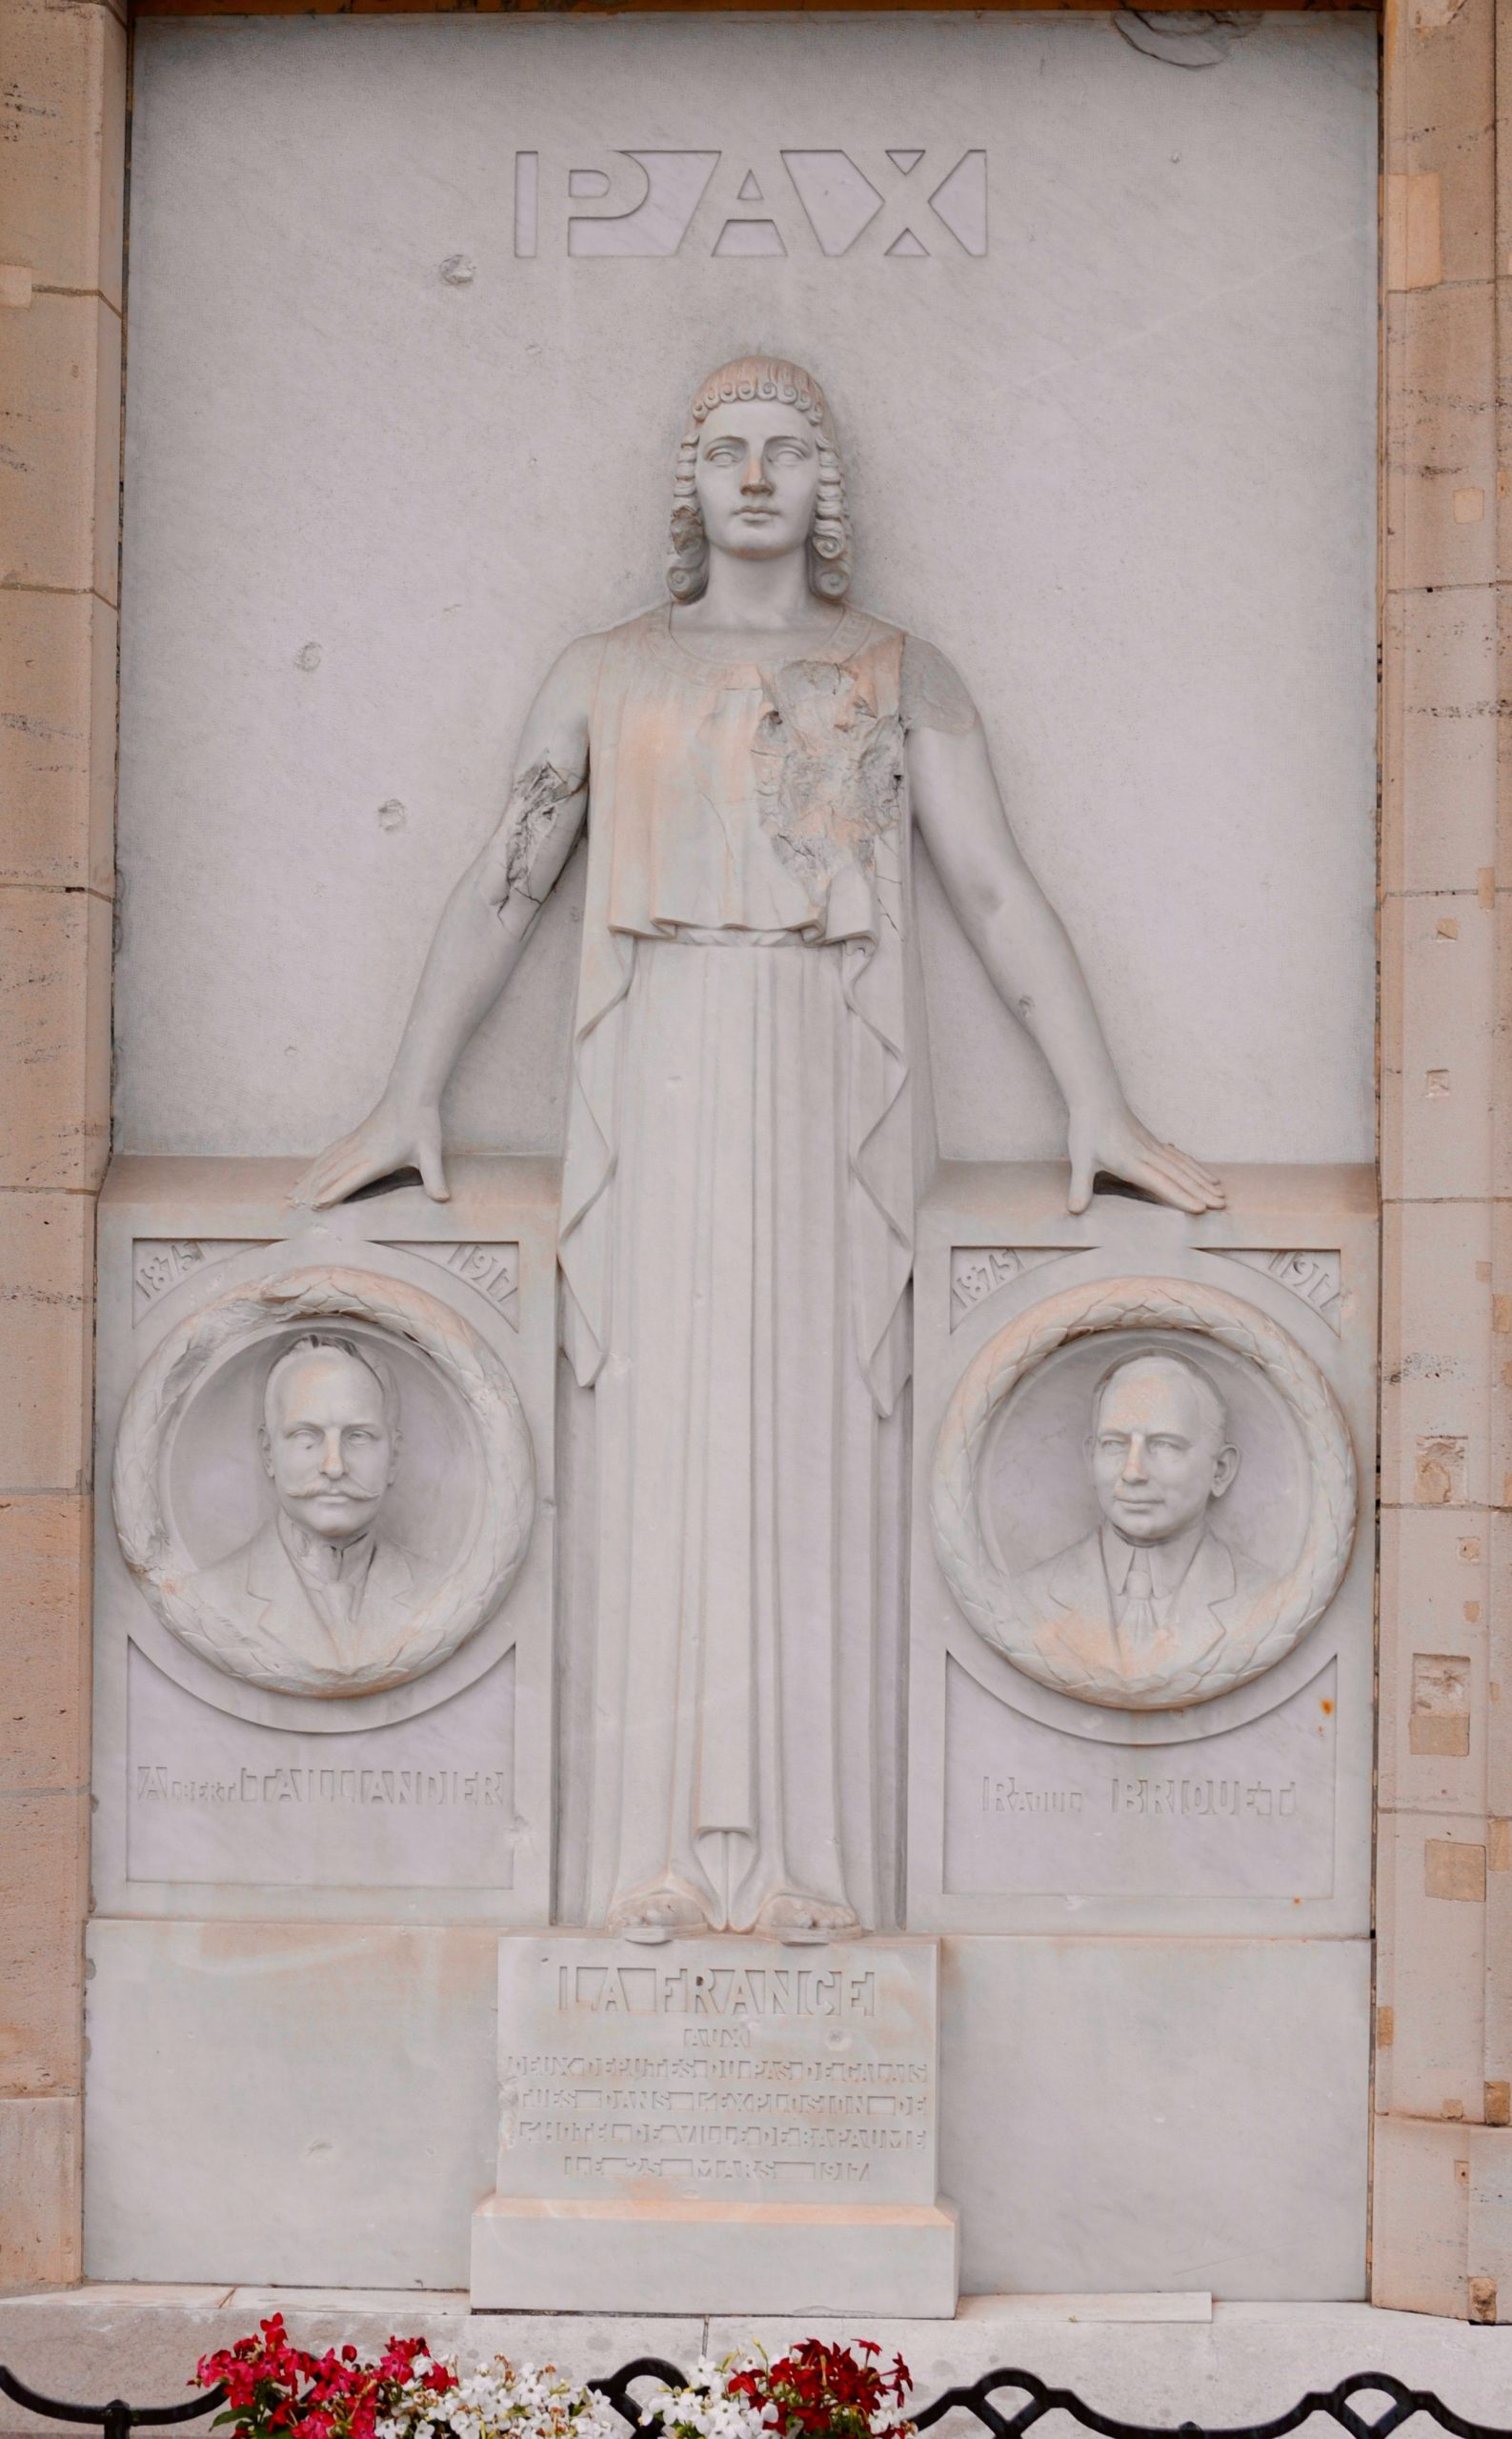 Memorial to the two French parliamentarians killed in the explosion in the Bapaume Town Hall on 25 March 1917 - The Battle of Bapaume - WWI Stories